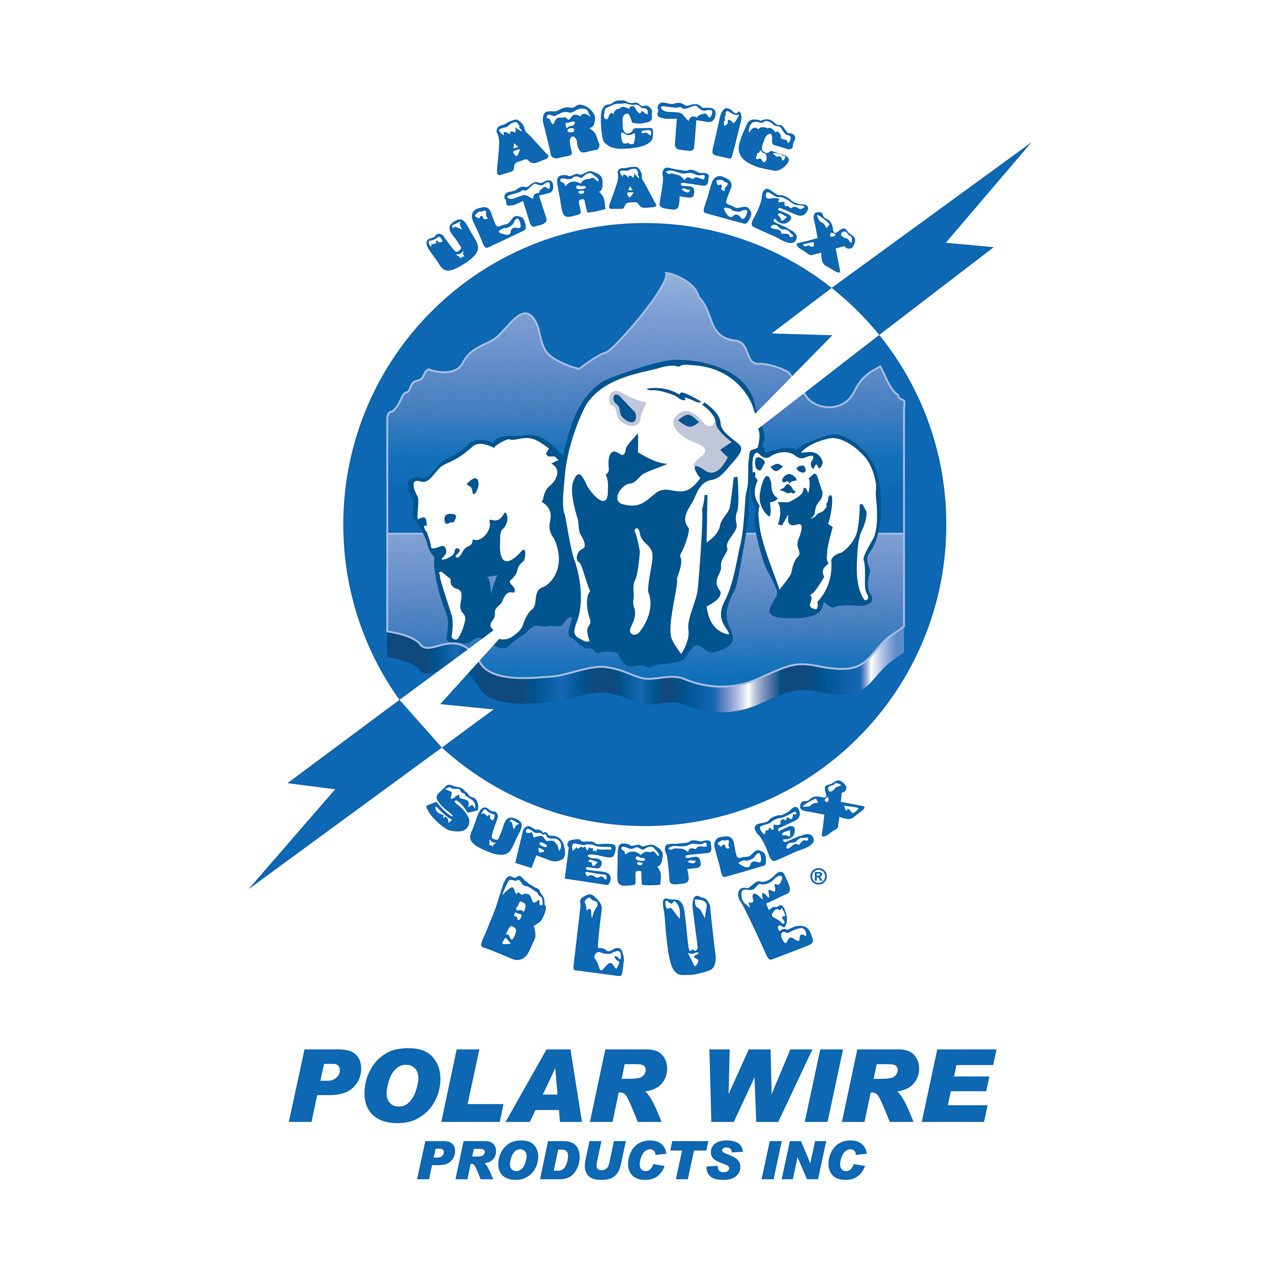 Contractor quality extension cords with 100% copper conductors resist abrasion and stay highly flexible in extreme cold